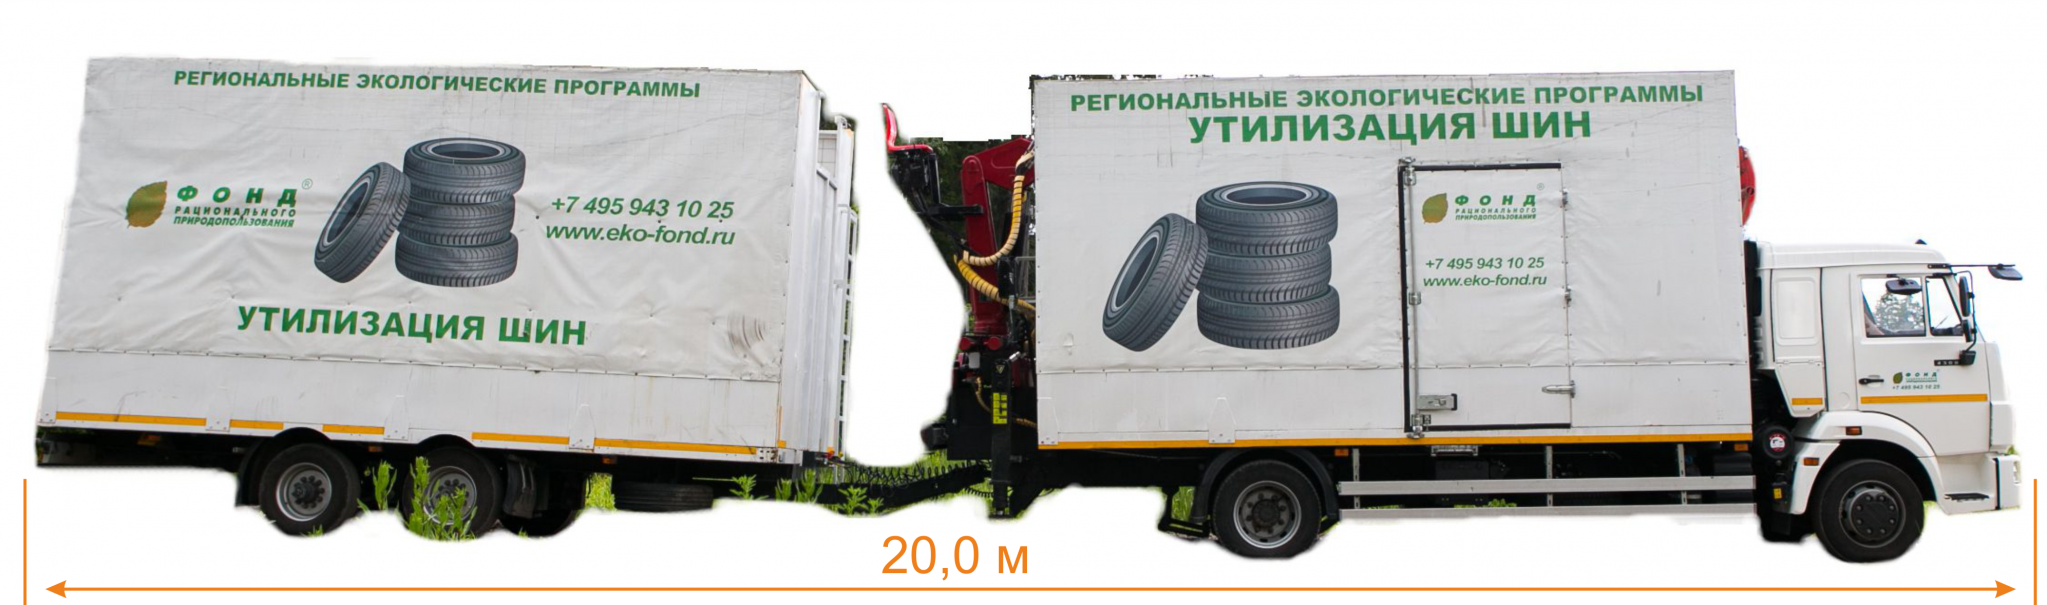 Kamaz_site1.png